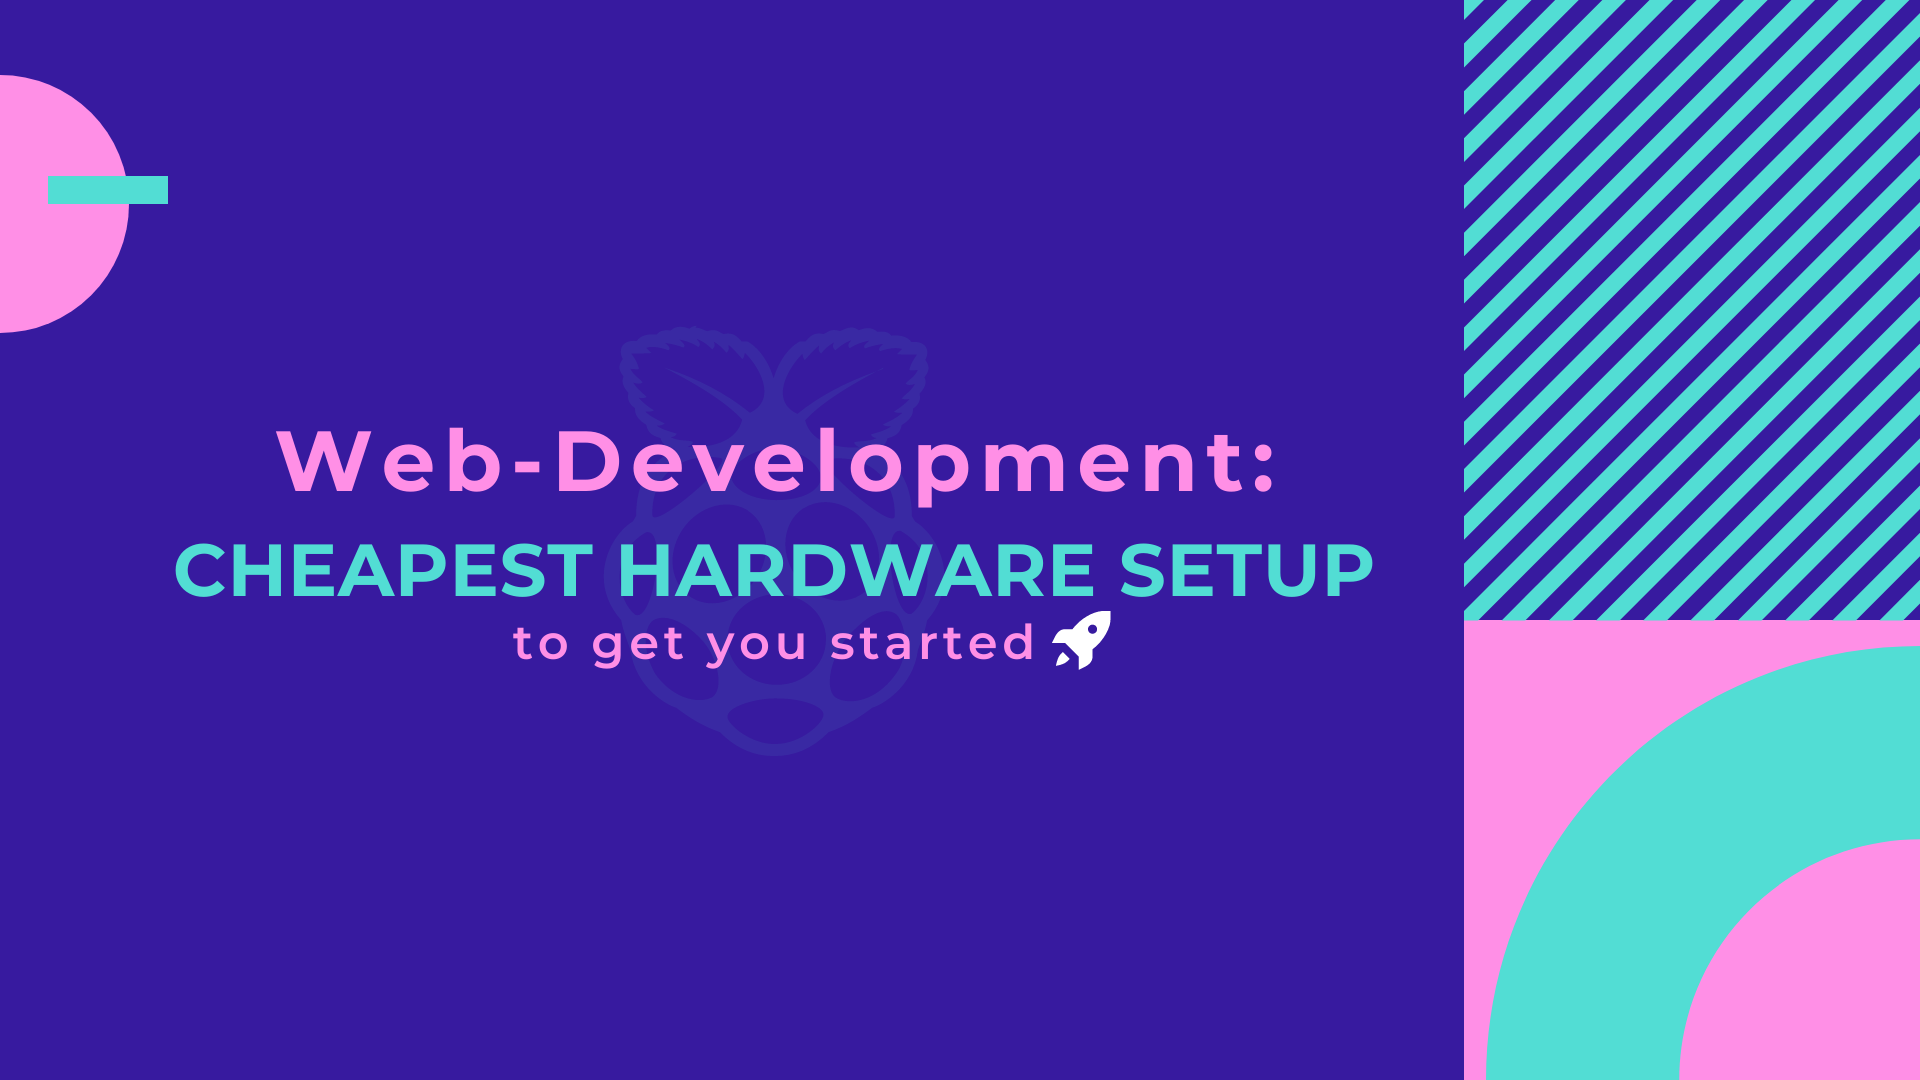 Web-Development: Cheapest hardware setup go get you started